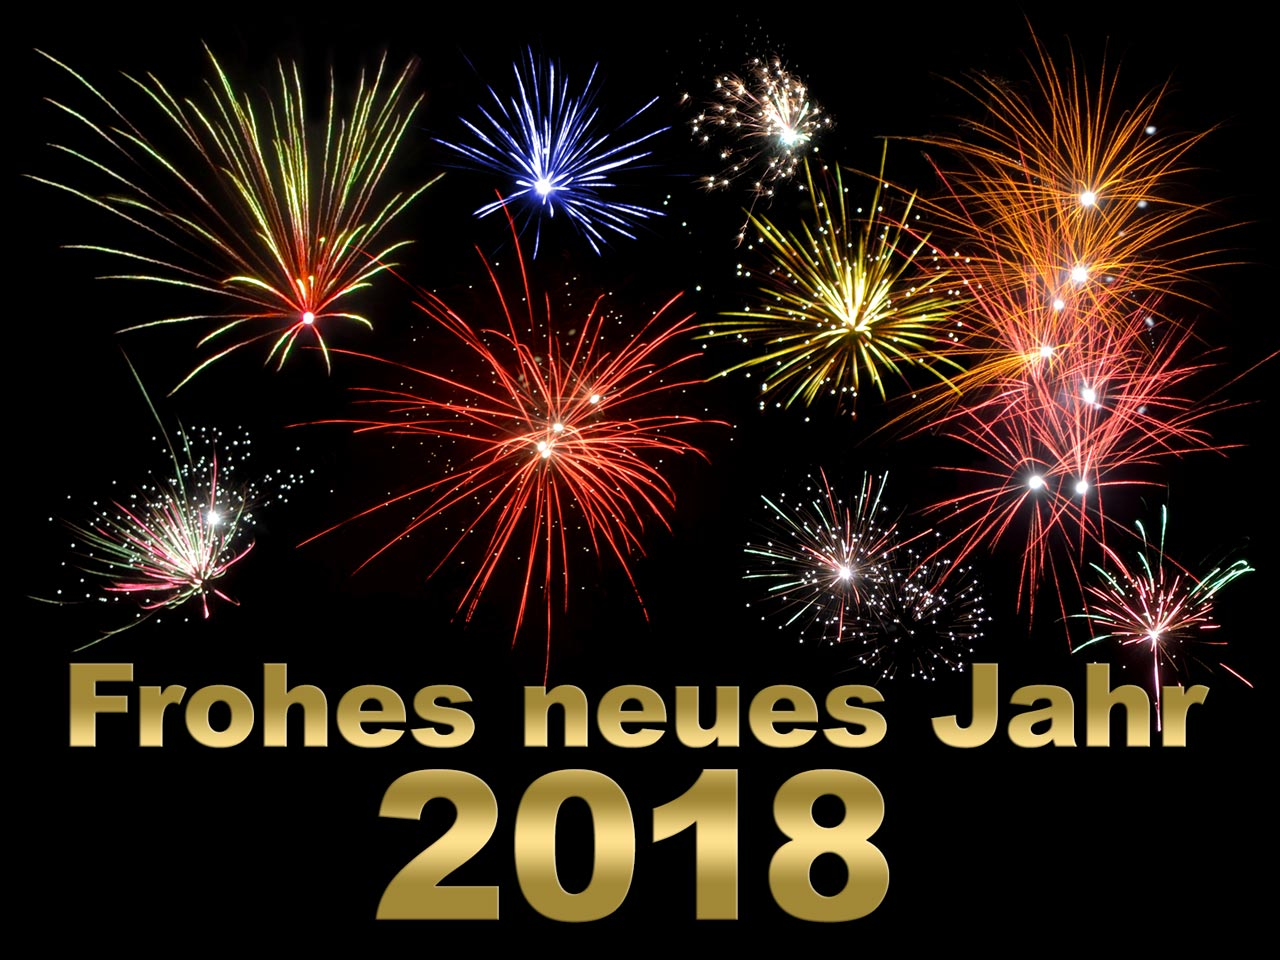 frohes-neues-jahr-2018-gold-b9a